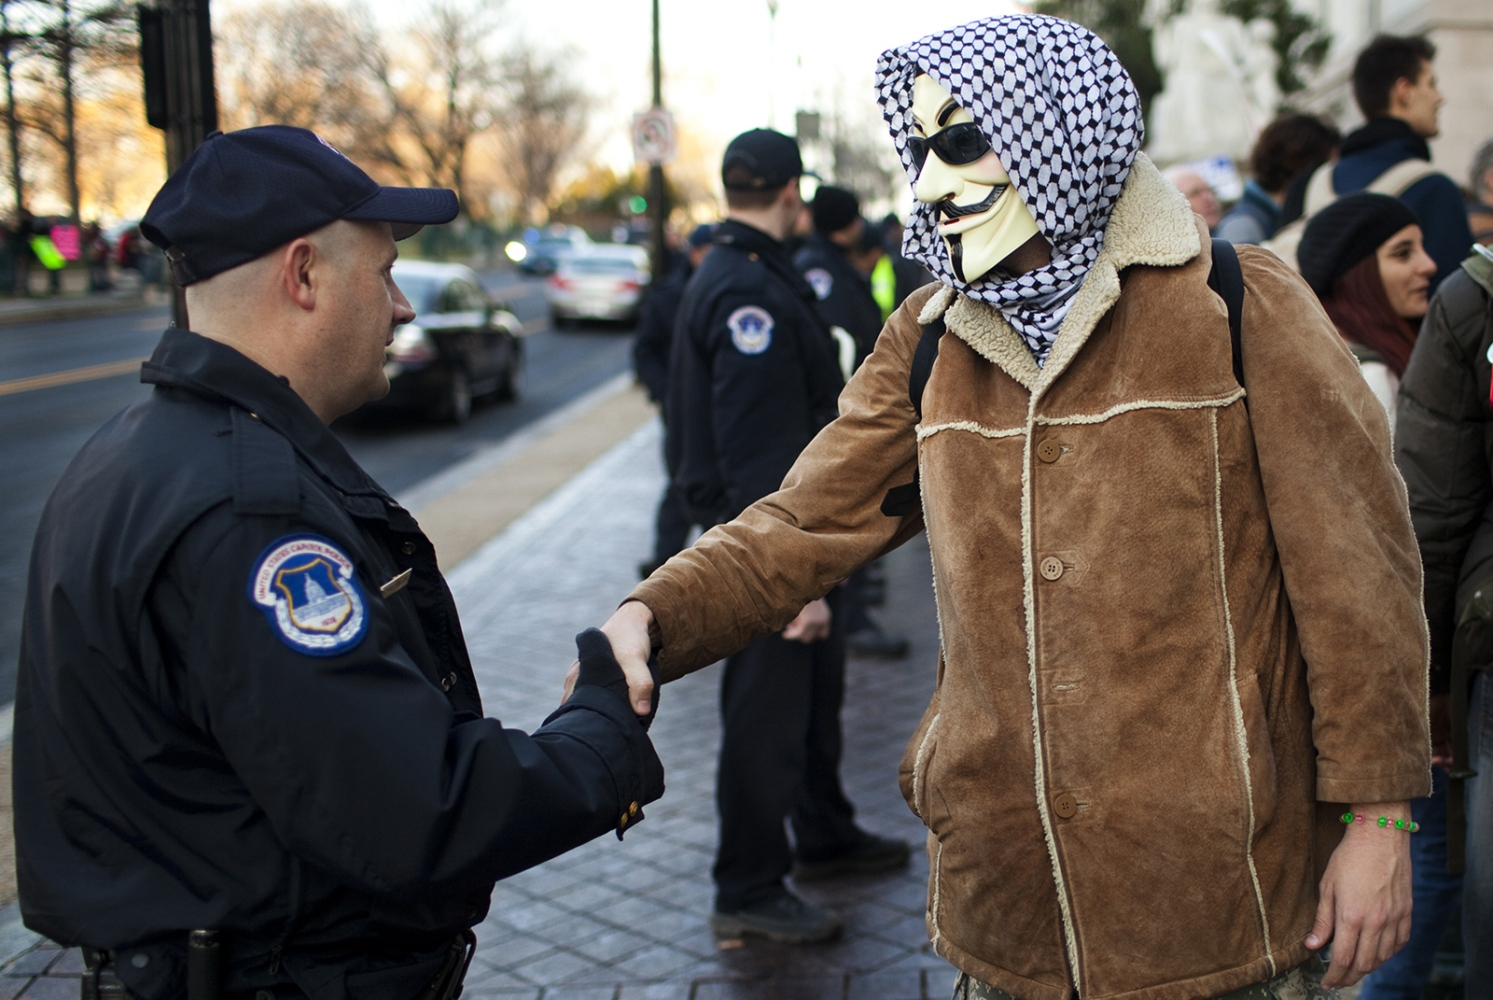 An officer of the Capitol Police shakes hands with an Occupy protest on Capitol Hill.